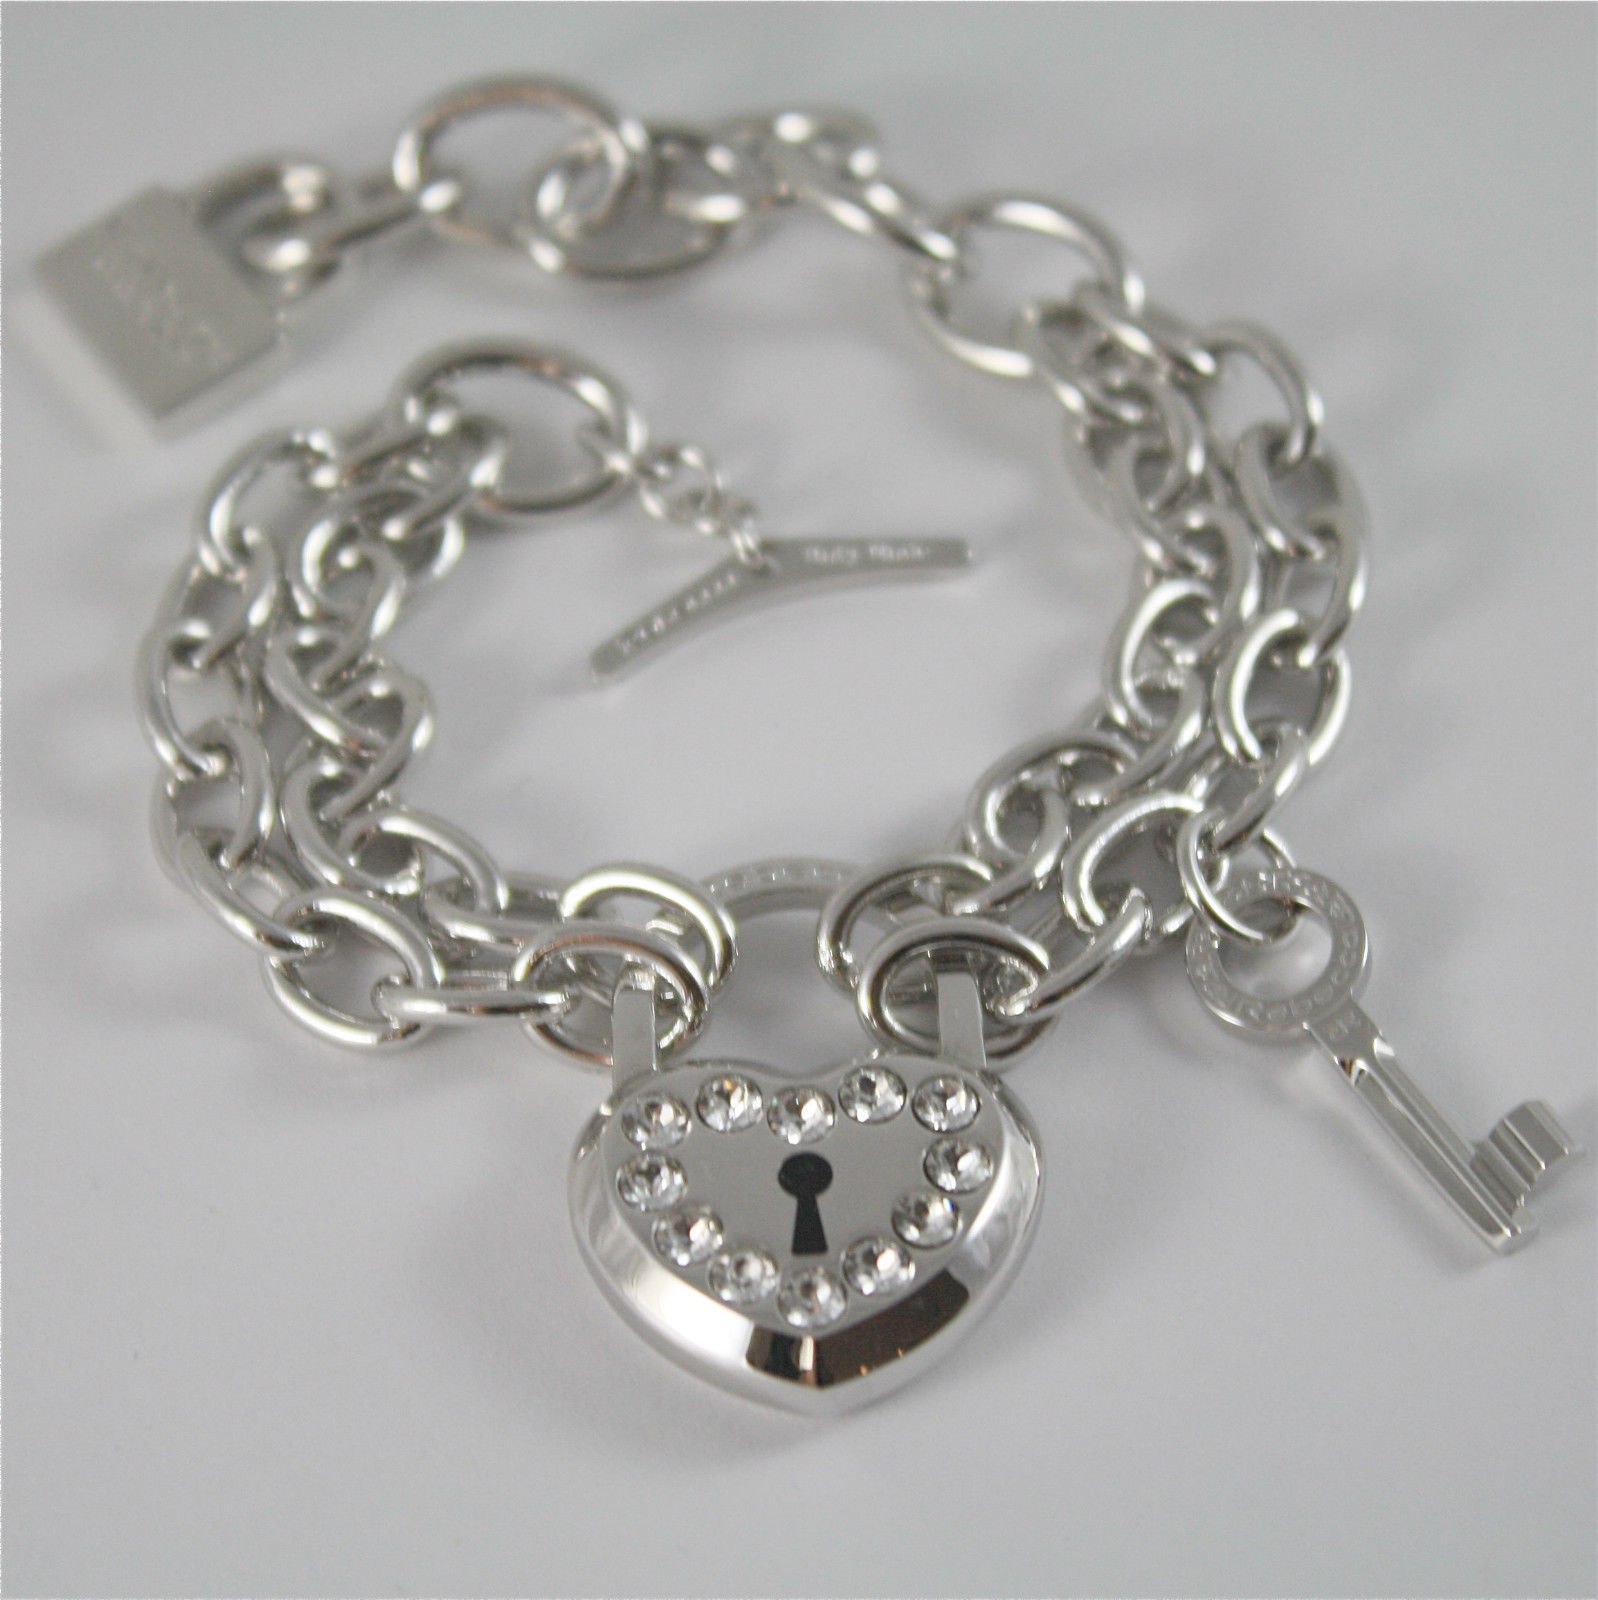 WHITE GOLD PLATED BRONZE REBECCA BRACELET LOVE LOCK BLLBBB26 MADE IN ITALY  7.87